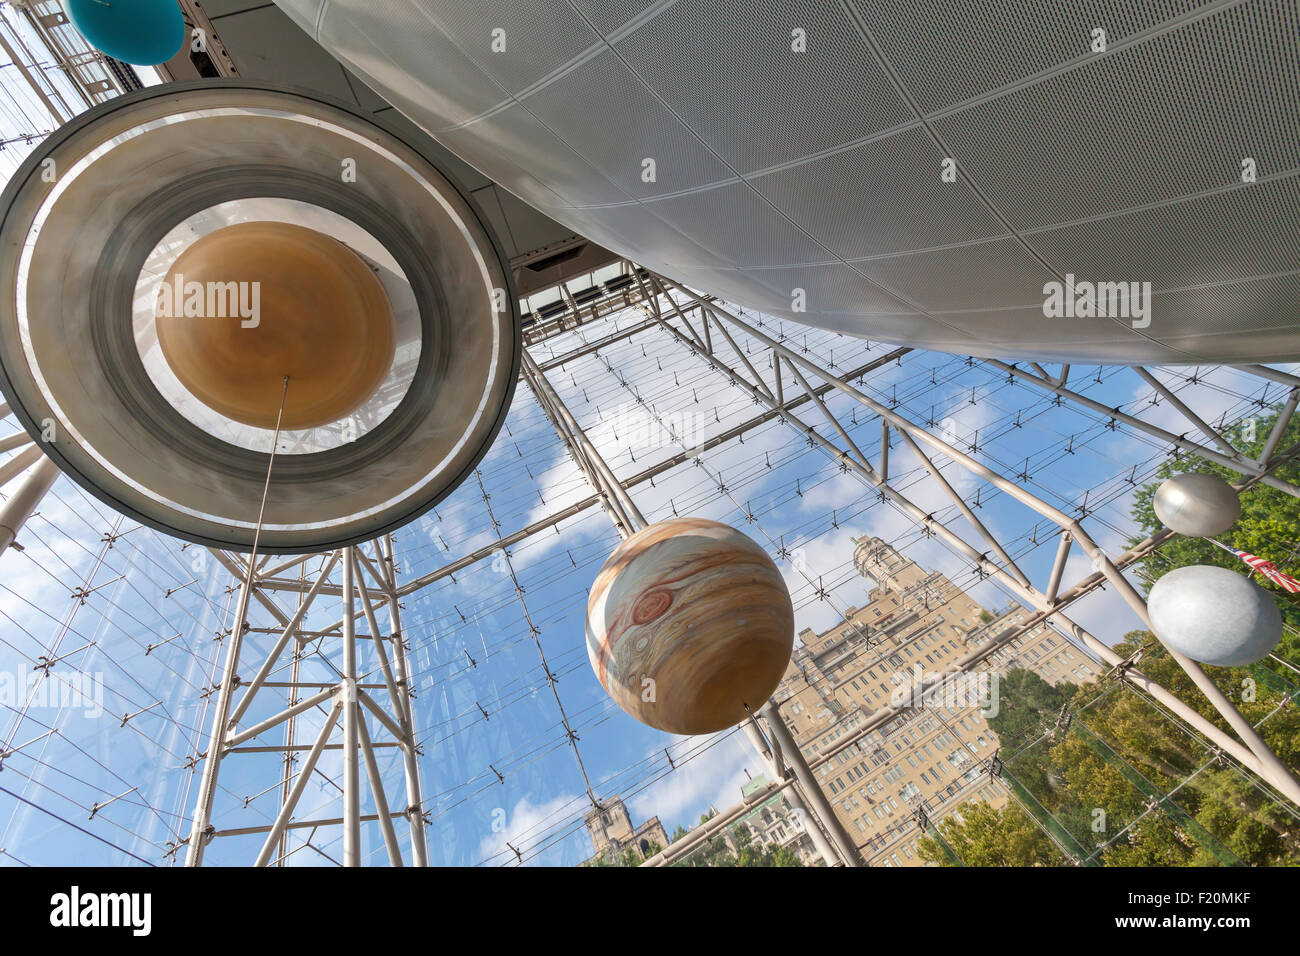 The Hayden Planetarium in the Museum of Natural History, Manhattan, New York City. - Stock Image